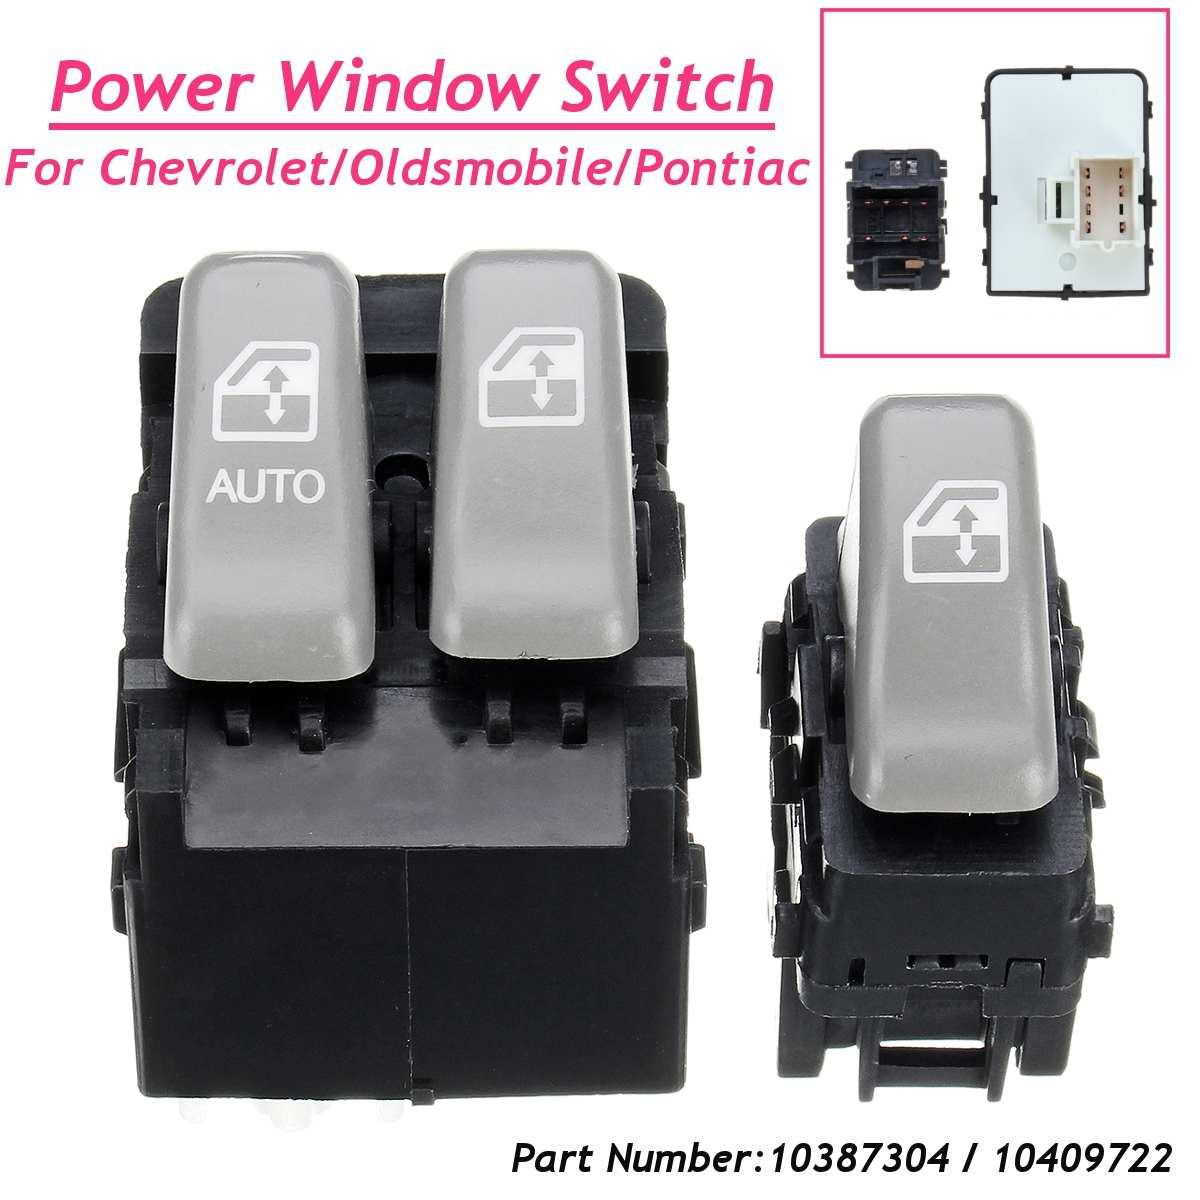 Intellective For Chevrolet Venture For Oldsmobile For Pontiac Montana 02-04 10387304 Power Master Window Switch Front Left Right 2pcs Set